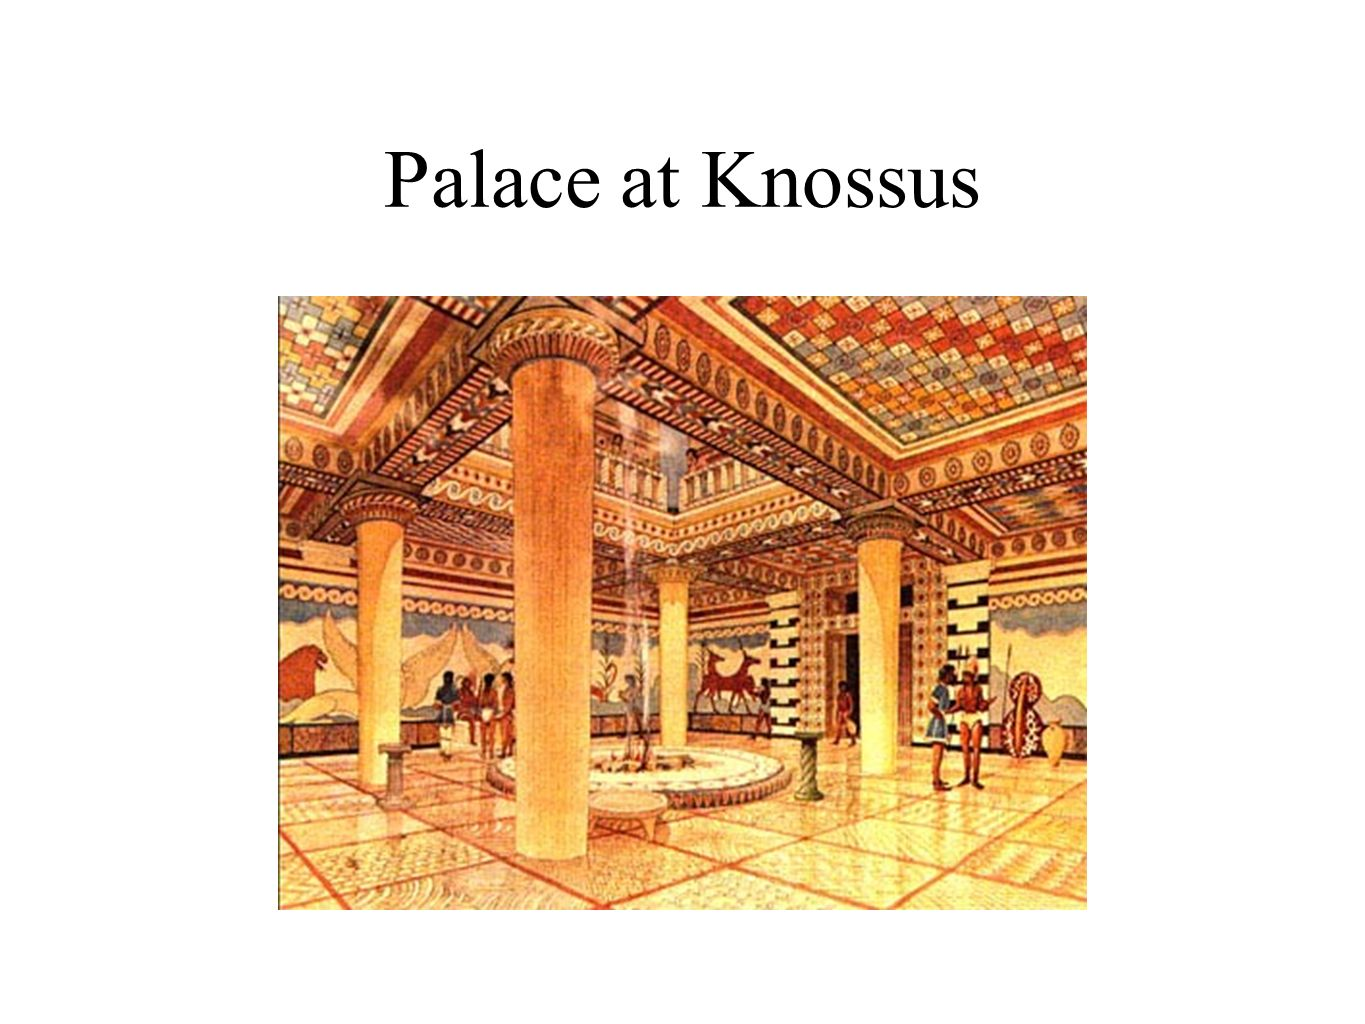 Palace at Knossus